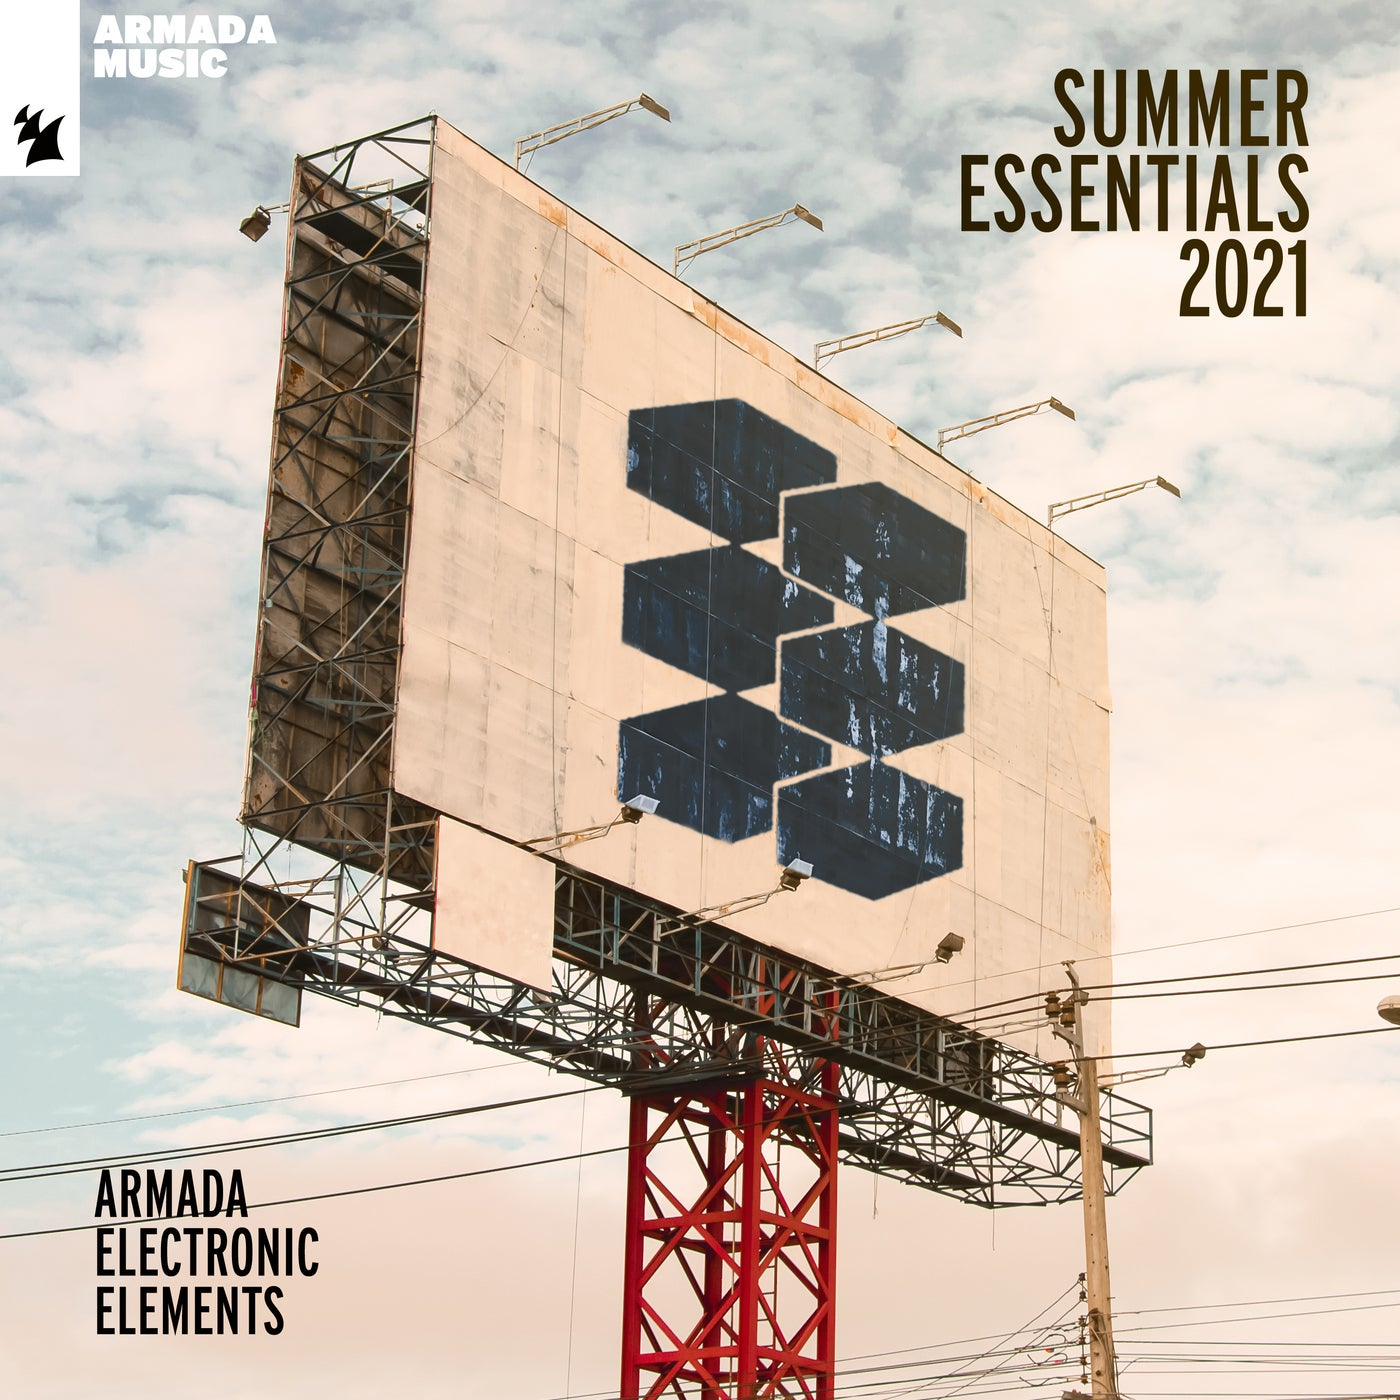 Armada Electronic Elements - Summer Essentials 2021 - Extended Versions